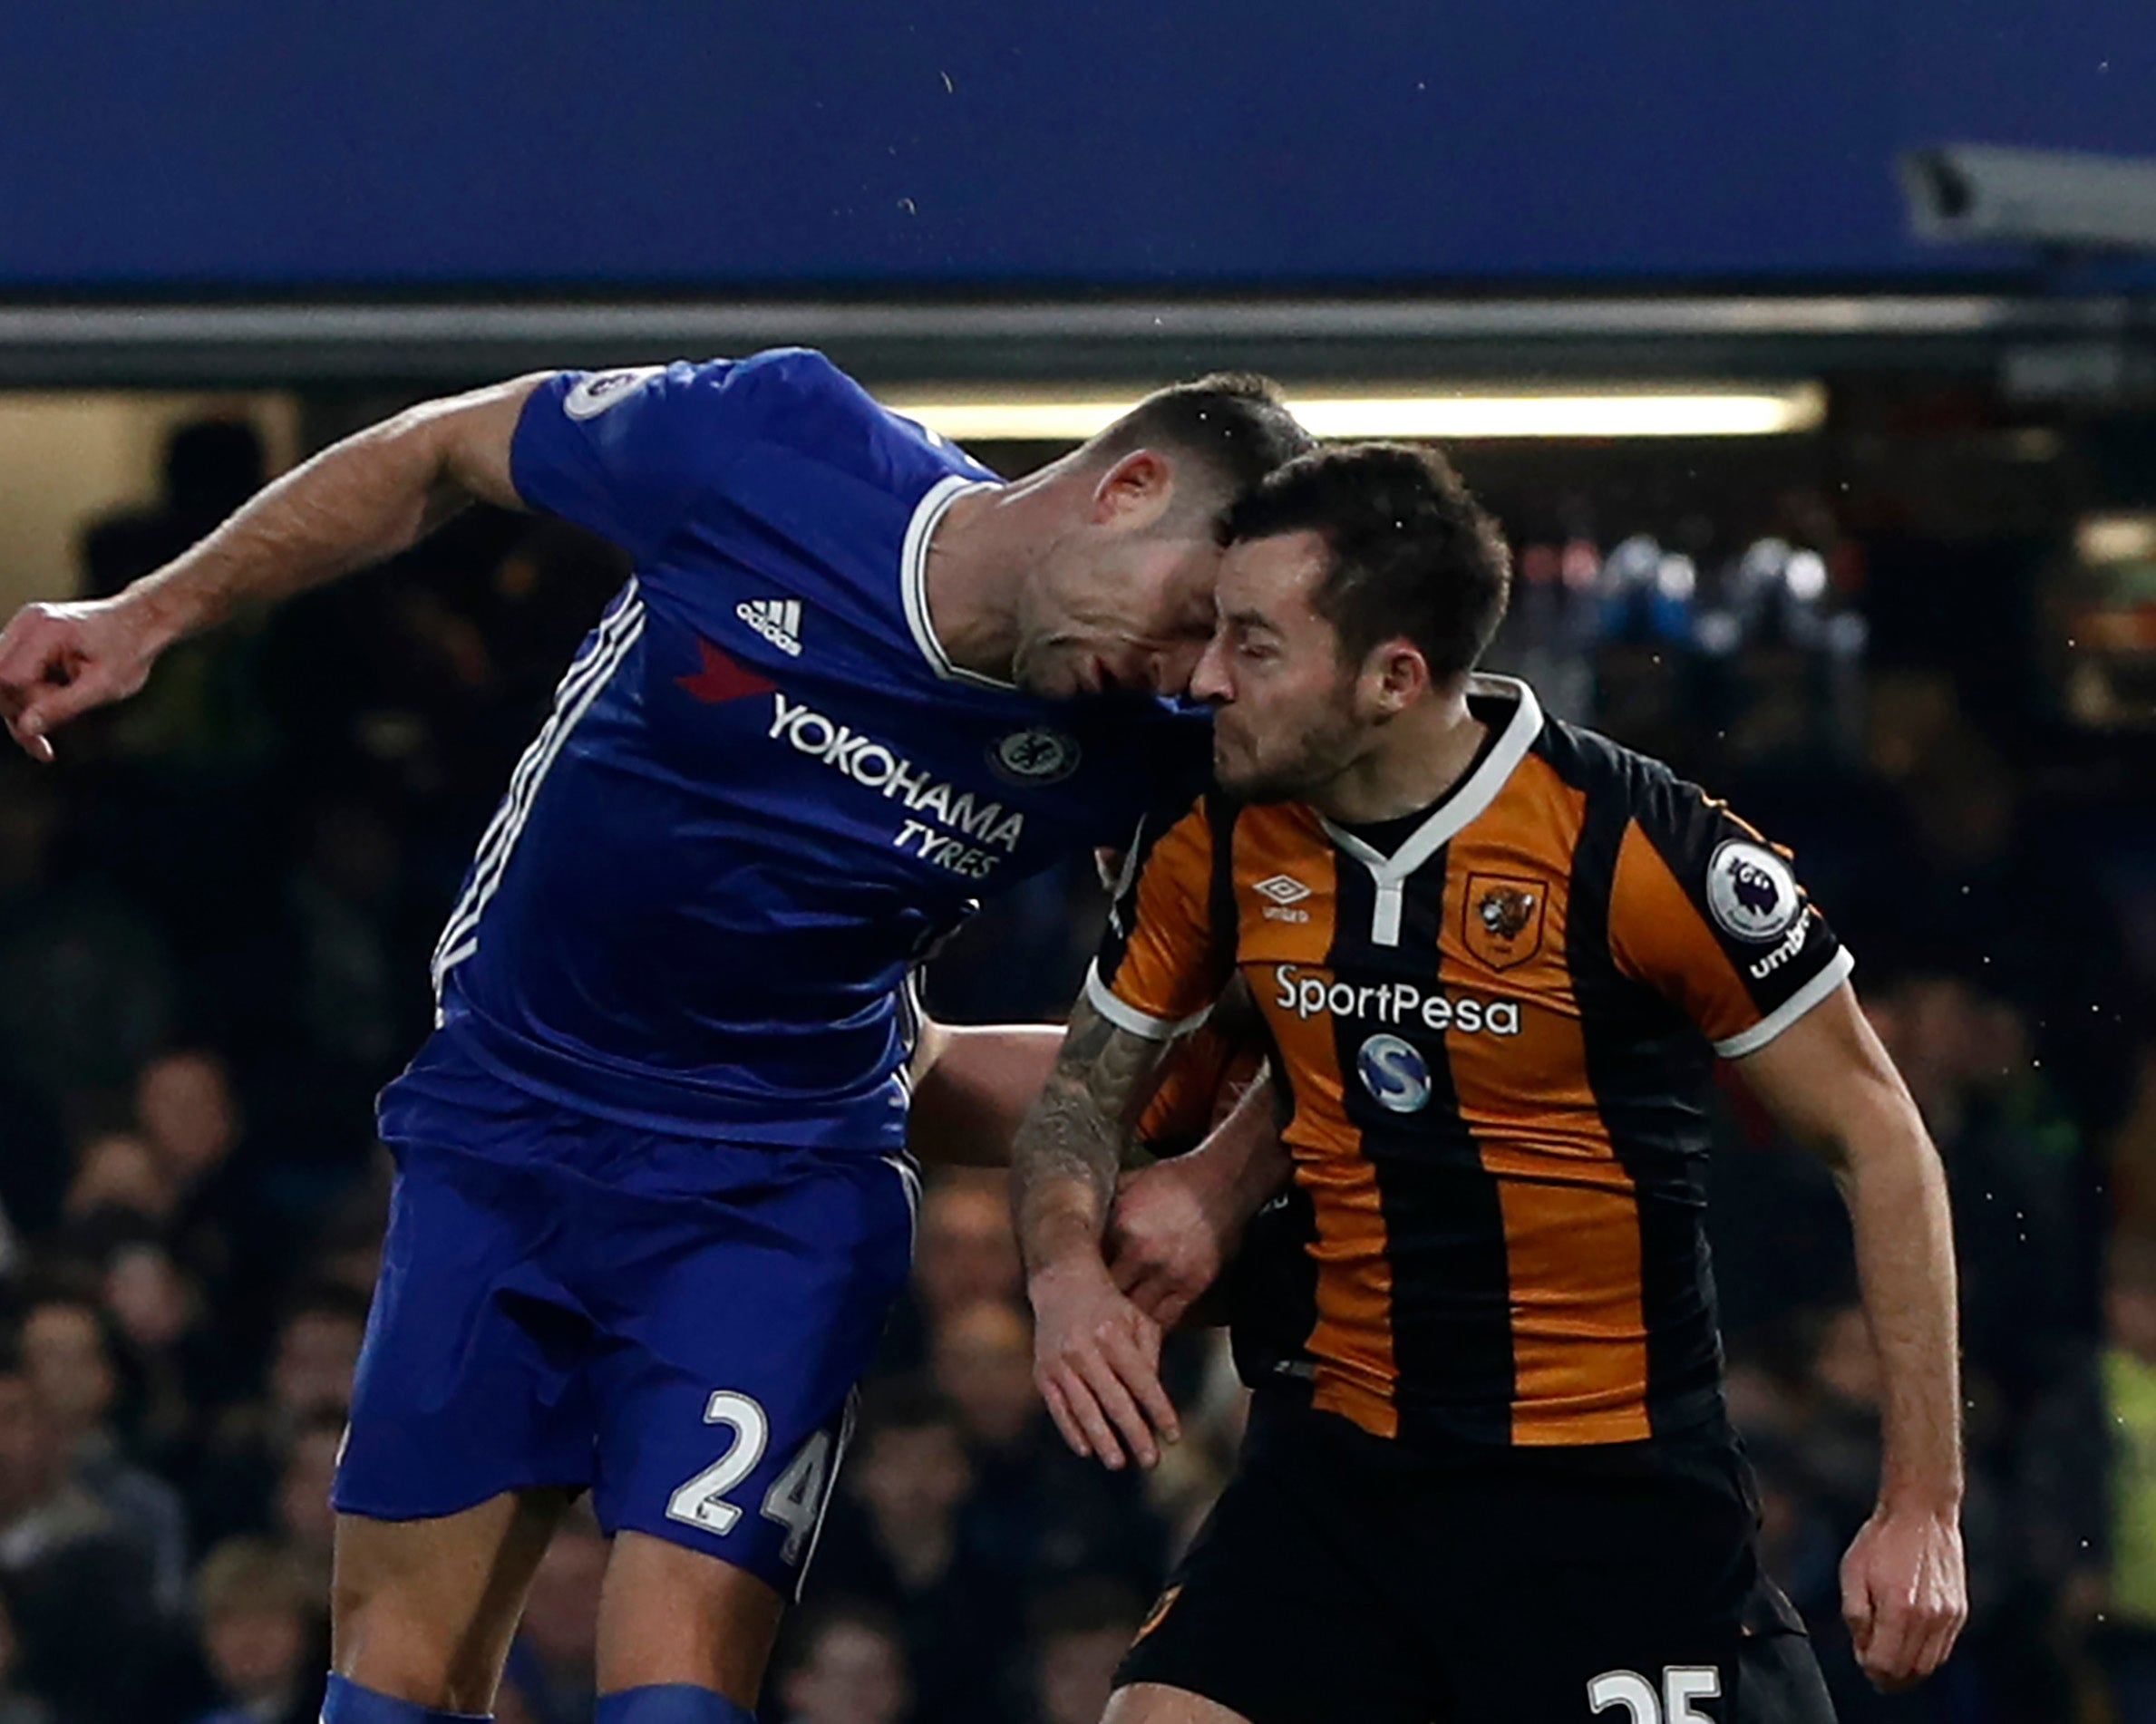 Ryan Mason - latest news, breaking stories and comment - The Independent